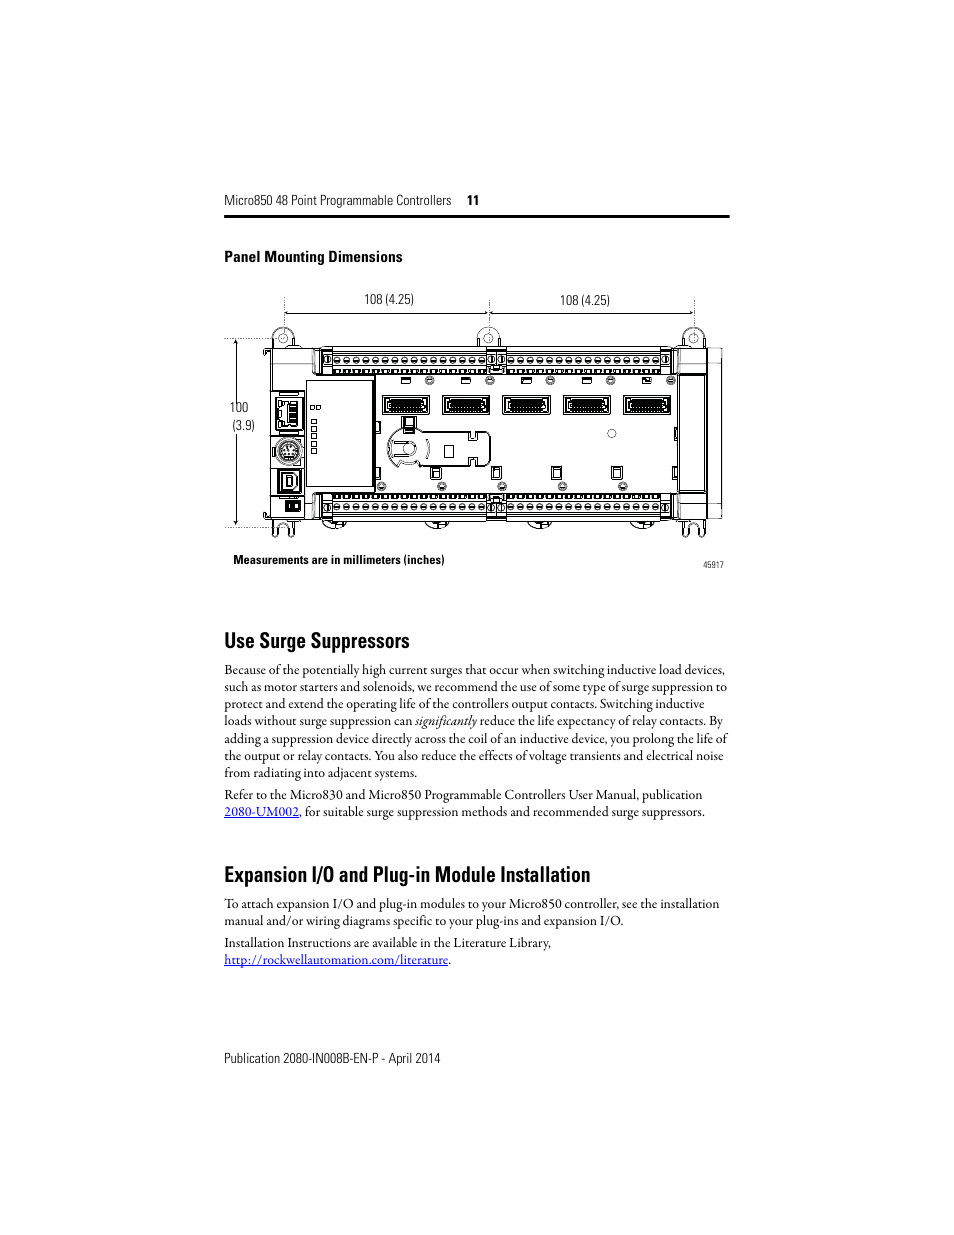 rockwell automation 2080 lc50 48awb_48qbb_48qvb_48qwb micro850 48 point programmable controllers installation instructions page11 use surge suppressors, expansion i o and plug in module micro 850 wiring diagram at et-consult.org